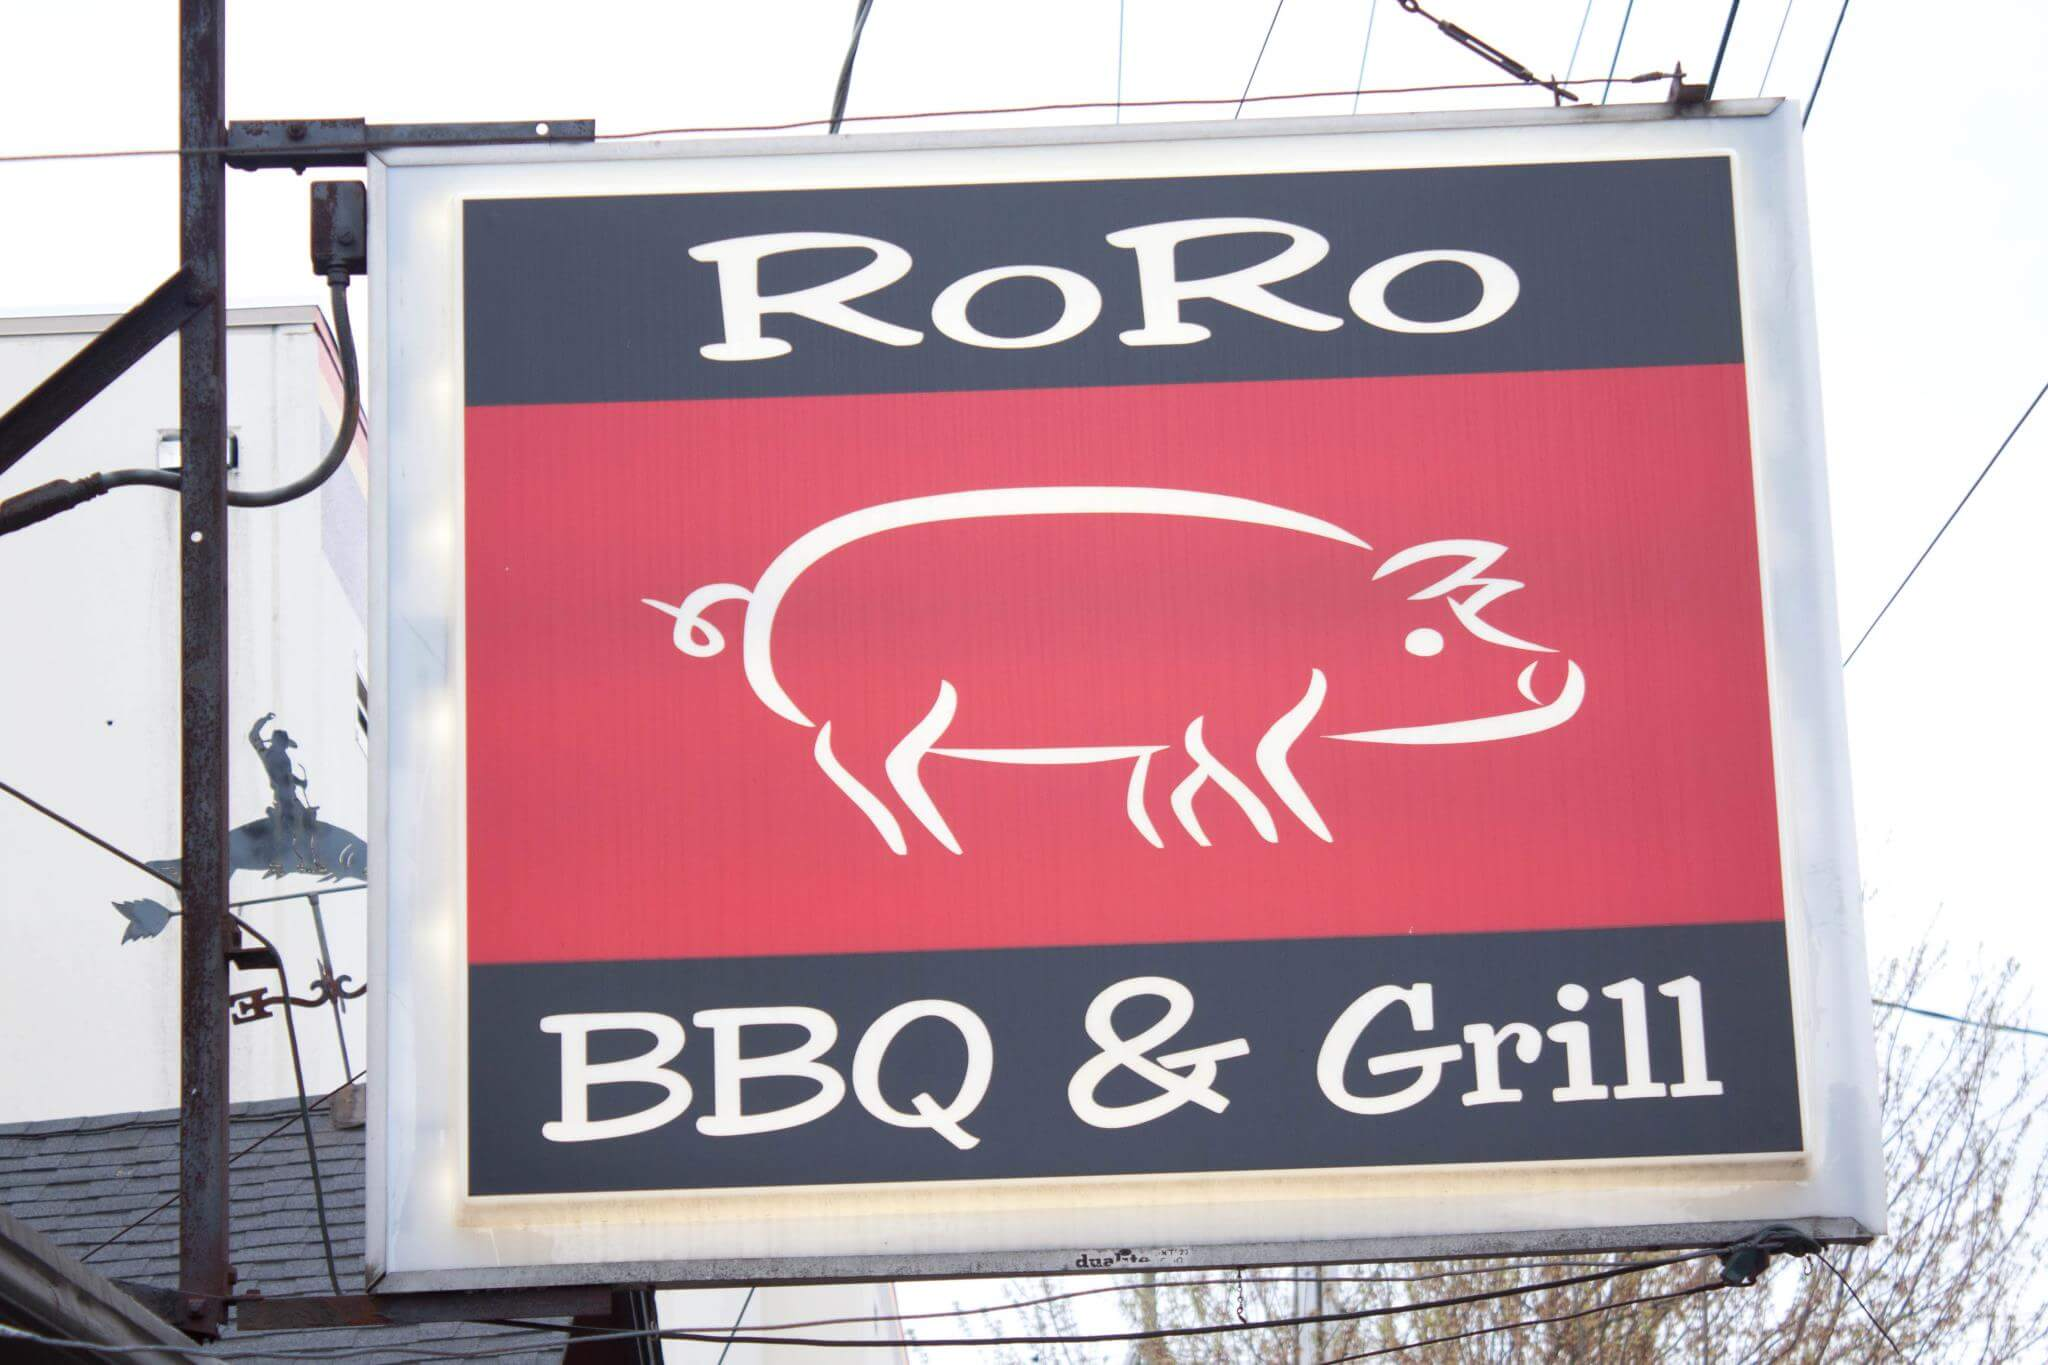 RoRo BBQ & Grill in Seattle